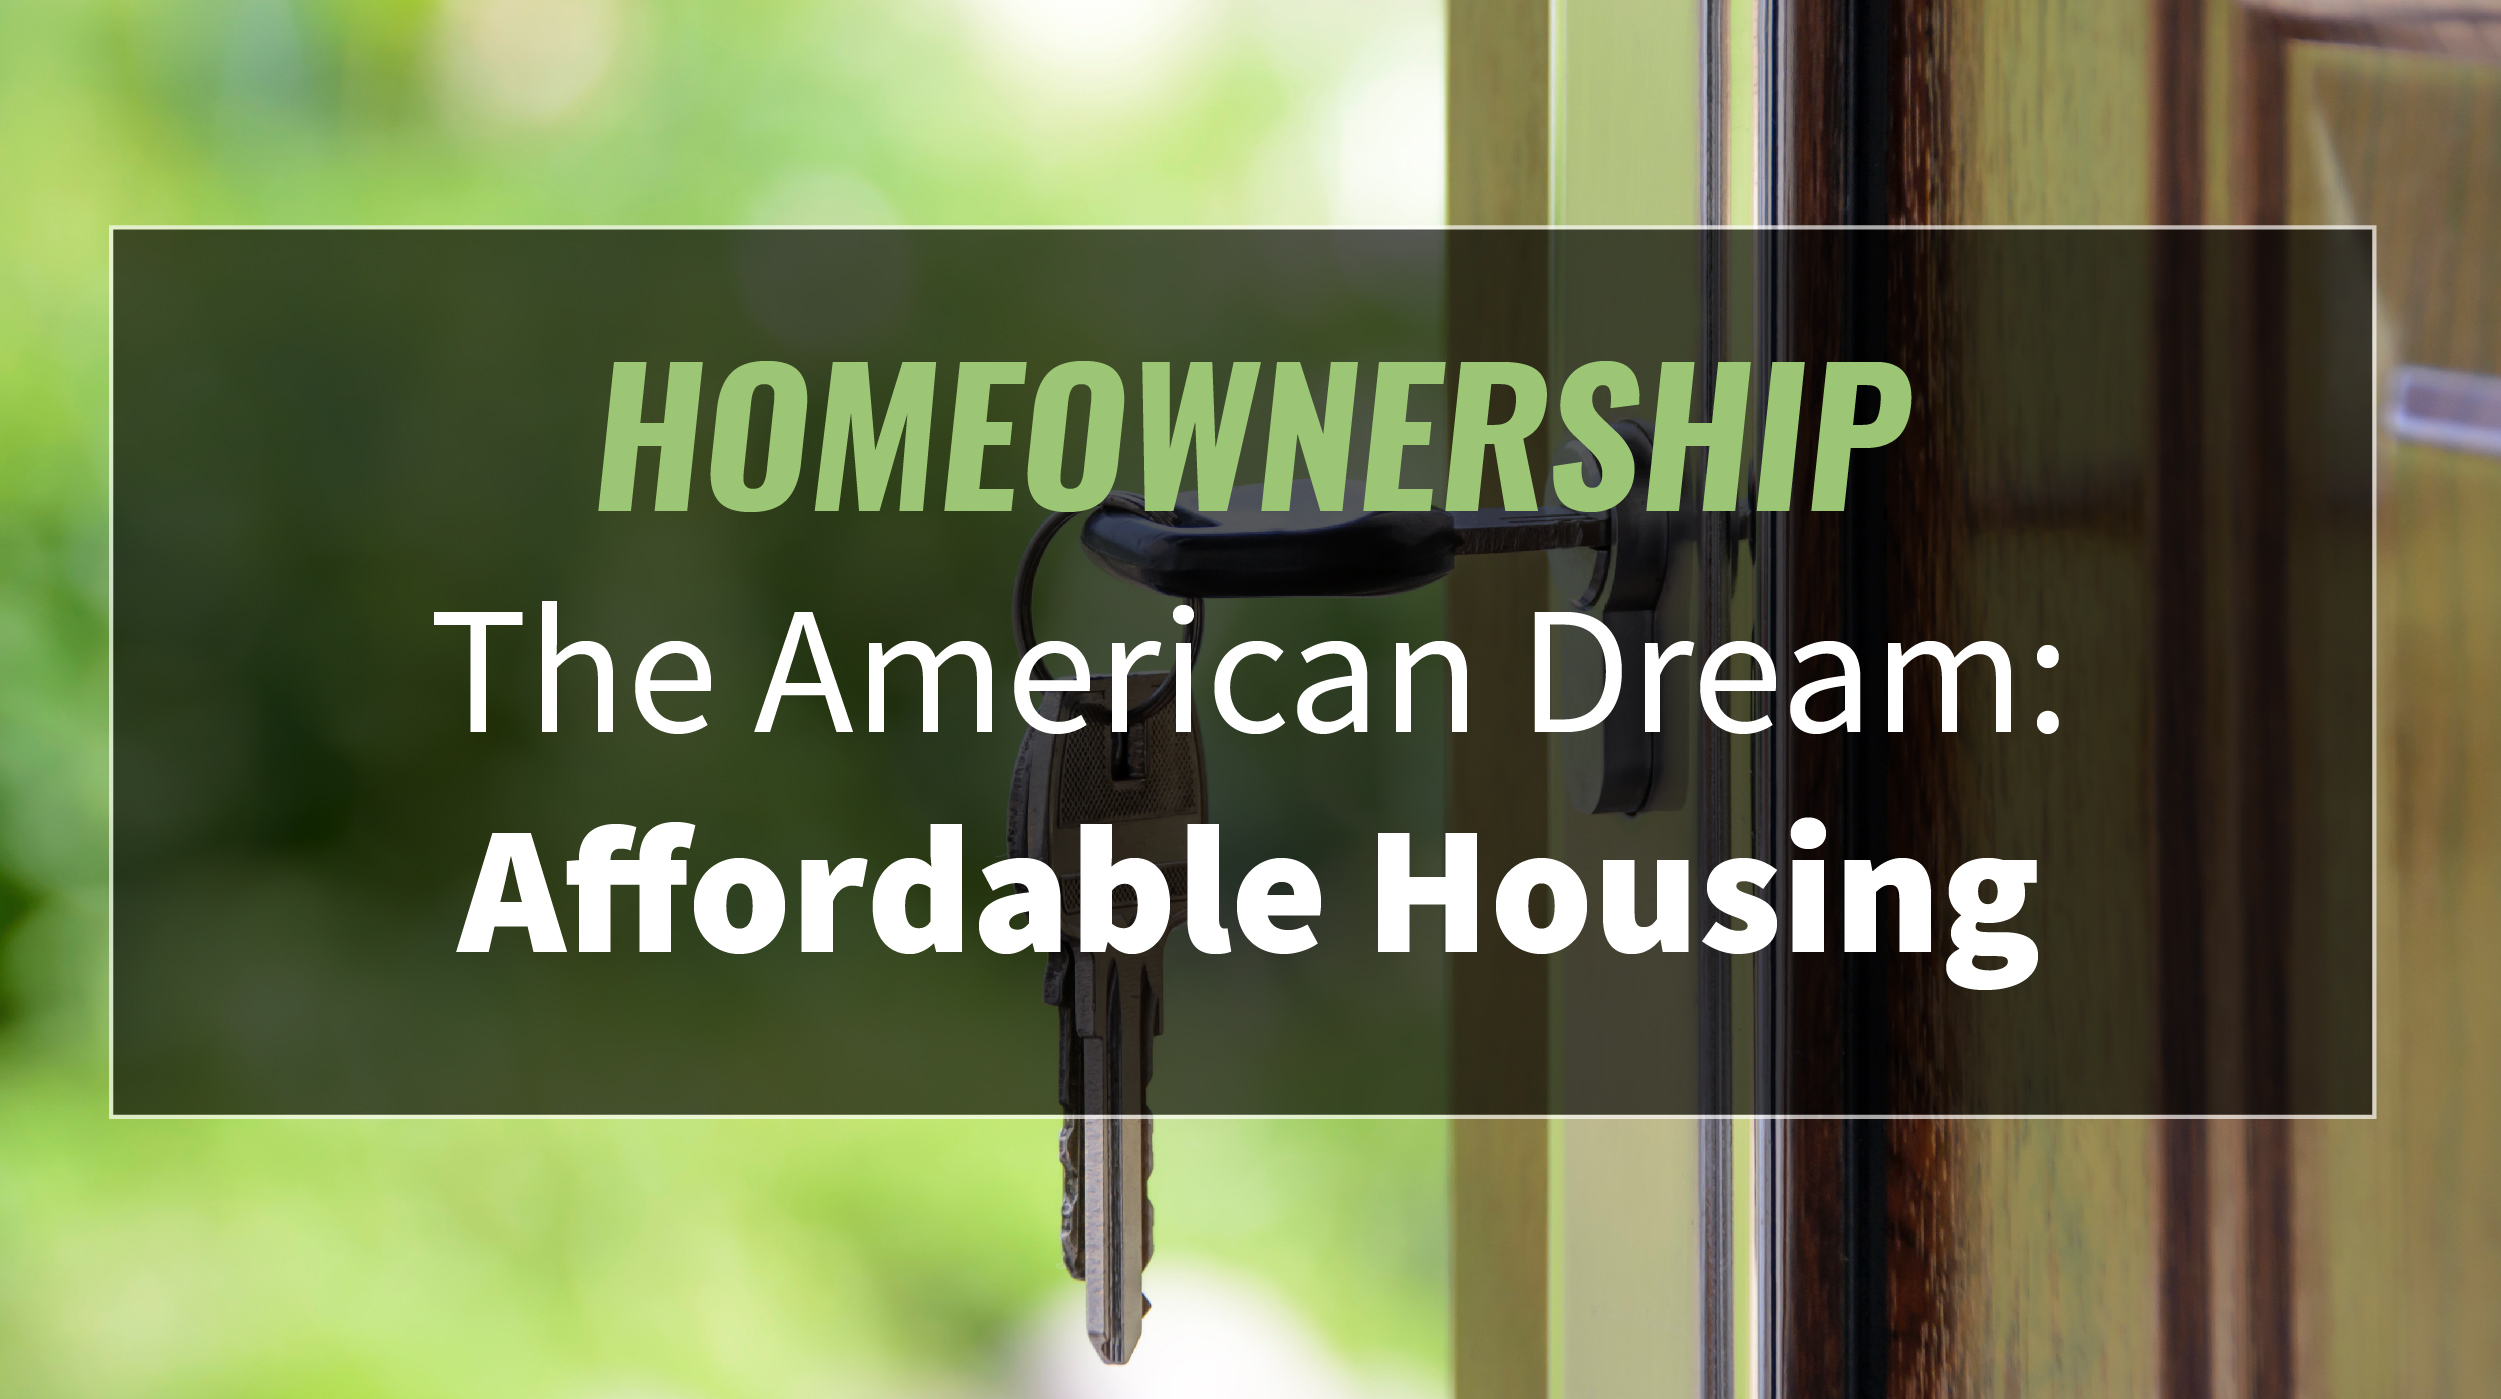 Homeownership The American Dream: Affordable Housing